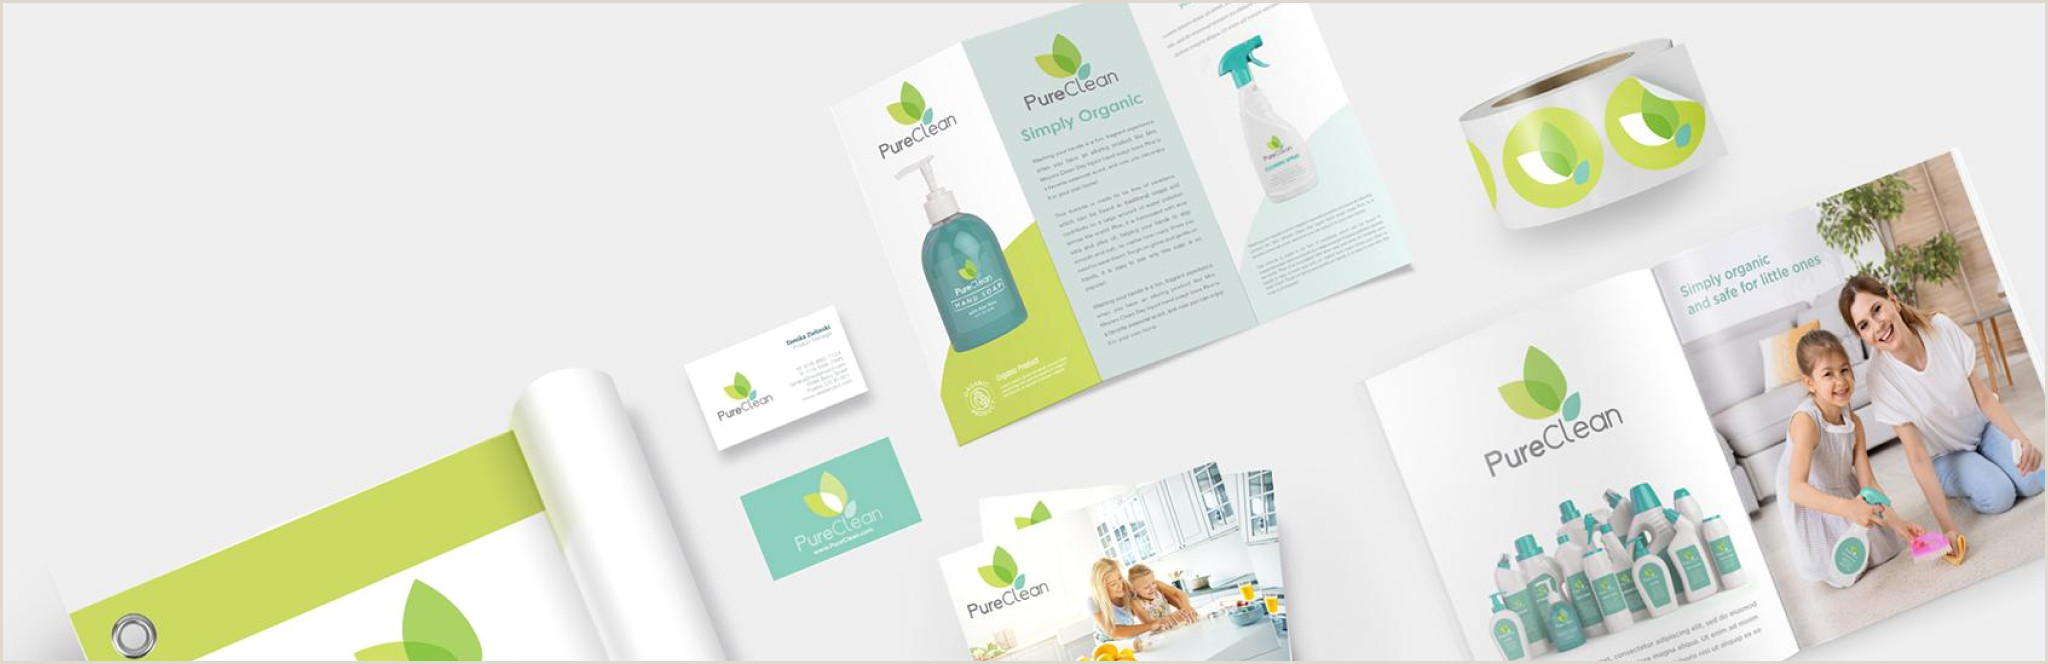 Business Cards Cheap Online Printplace High Quality Line Printing Services